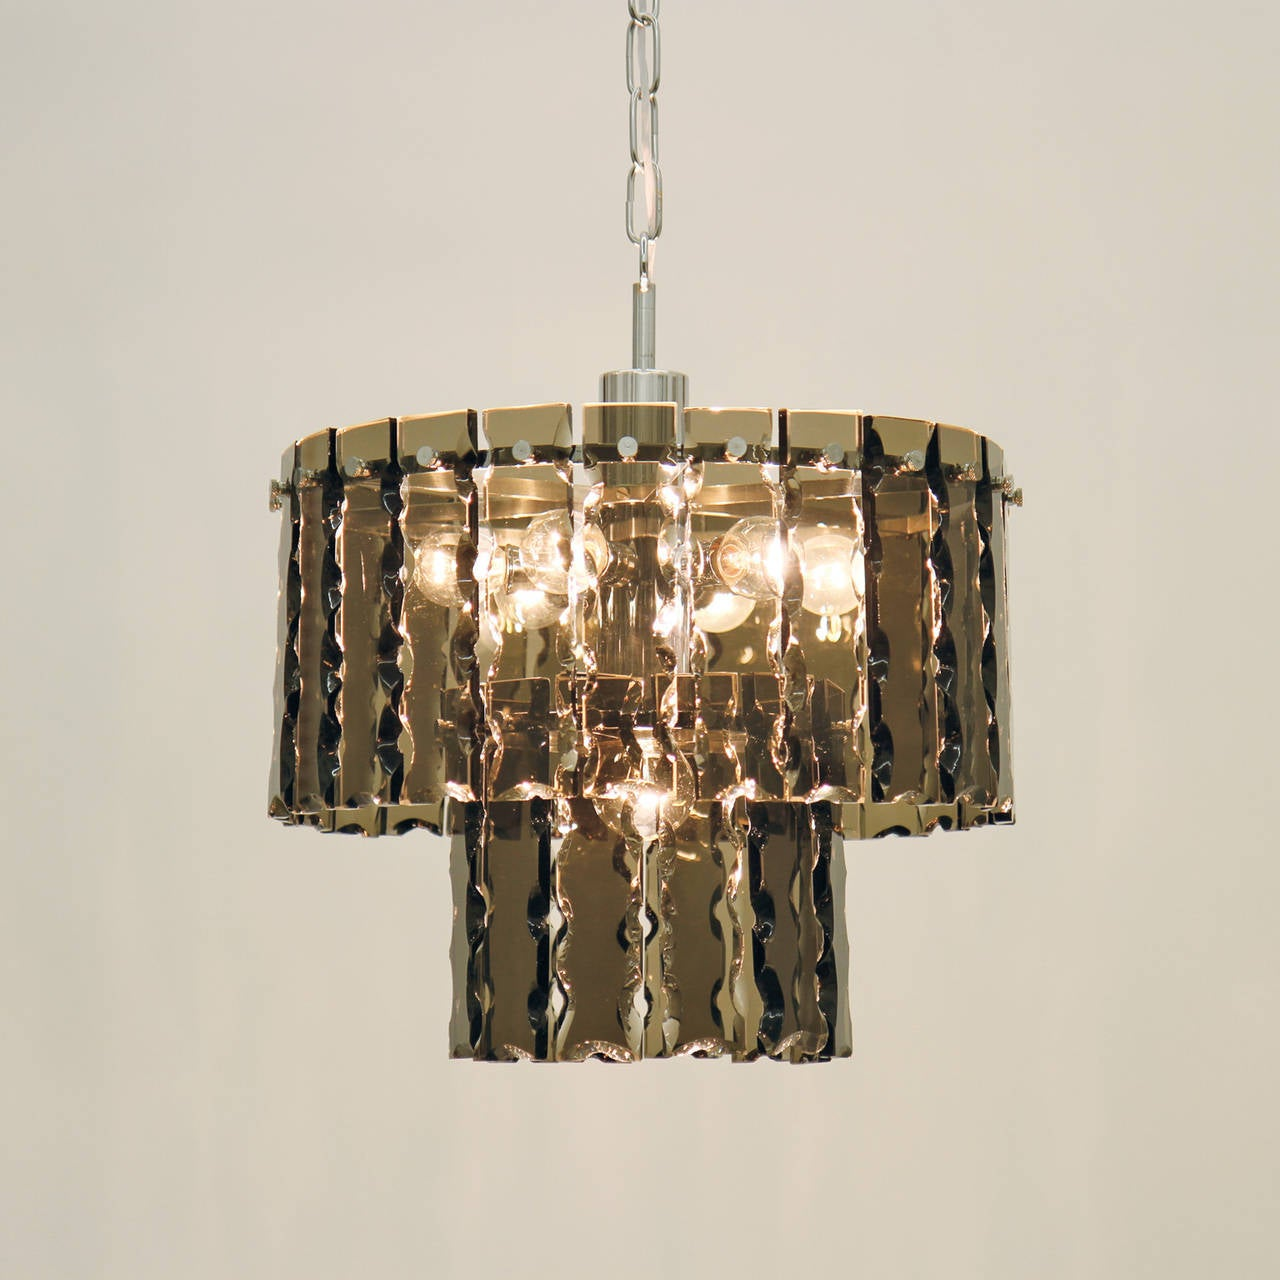 Fontana Arte Style Two-Tier Smoke Glass Chandelier 8